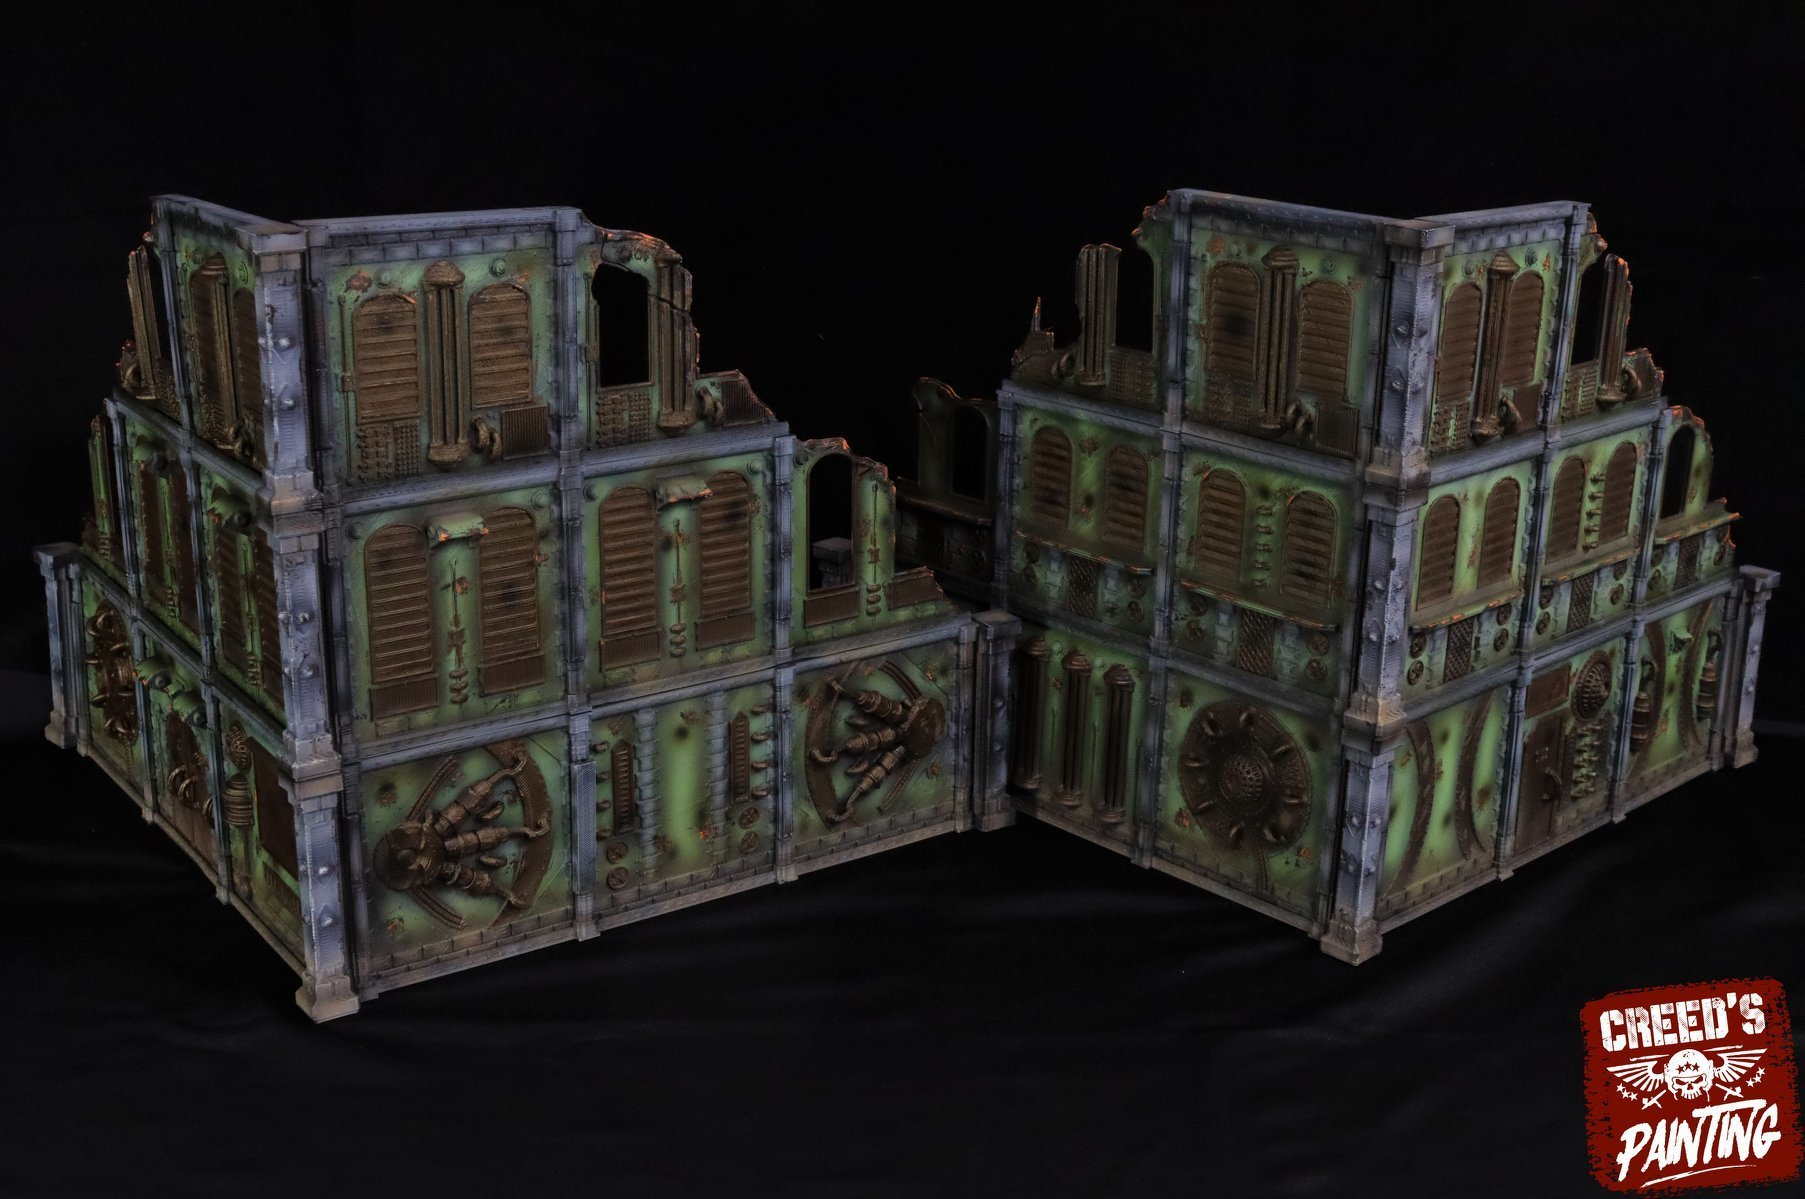 90221506_1108946656112276_8755375091564412928_o.jpg Download STL file Modular industrial buildings for wargaming steampunk grimdark terrain • 3D print template, Alario